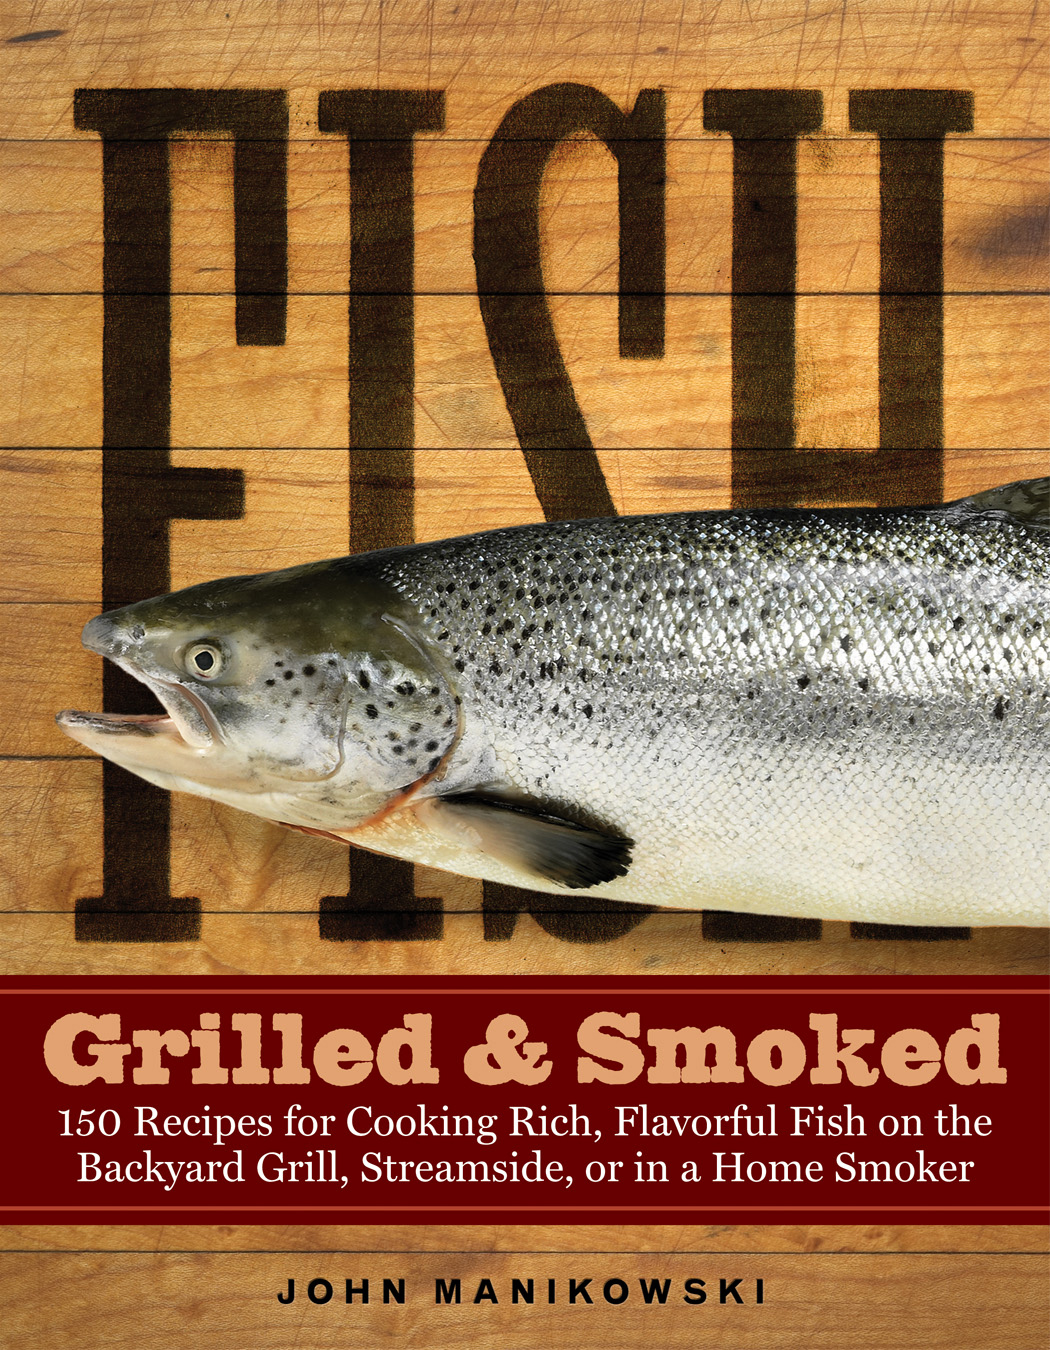 Fish Grilled & Smoked 150 Recipes for Cooking Rich, Flavorful Fish on the Backyard Grill, Streamside, or in a Home Smoker - John Manikowski